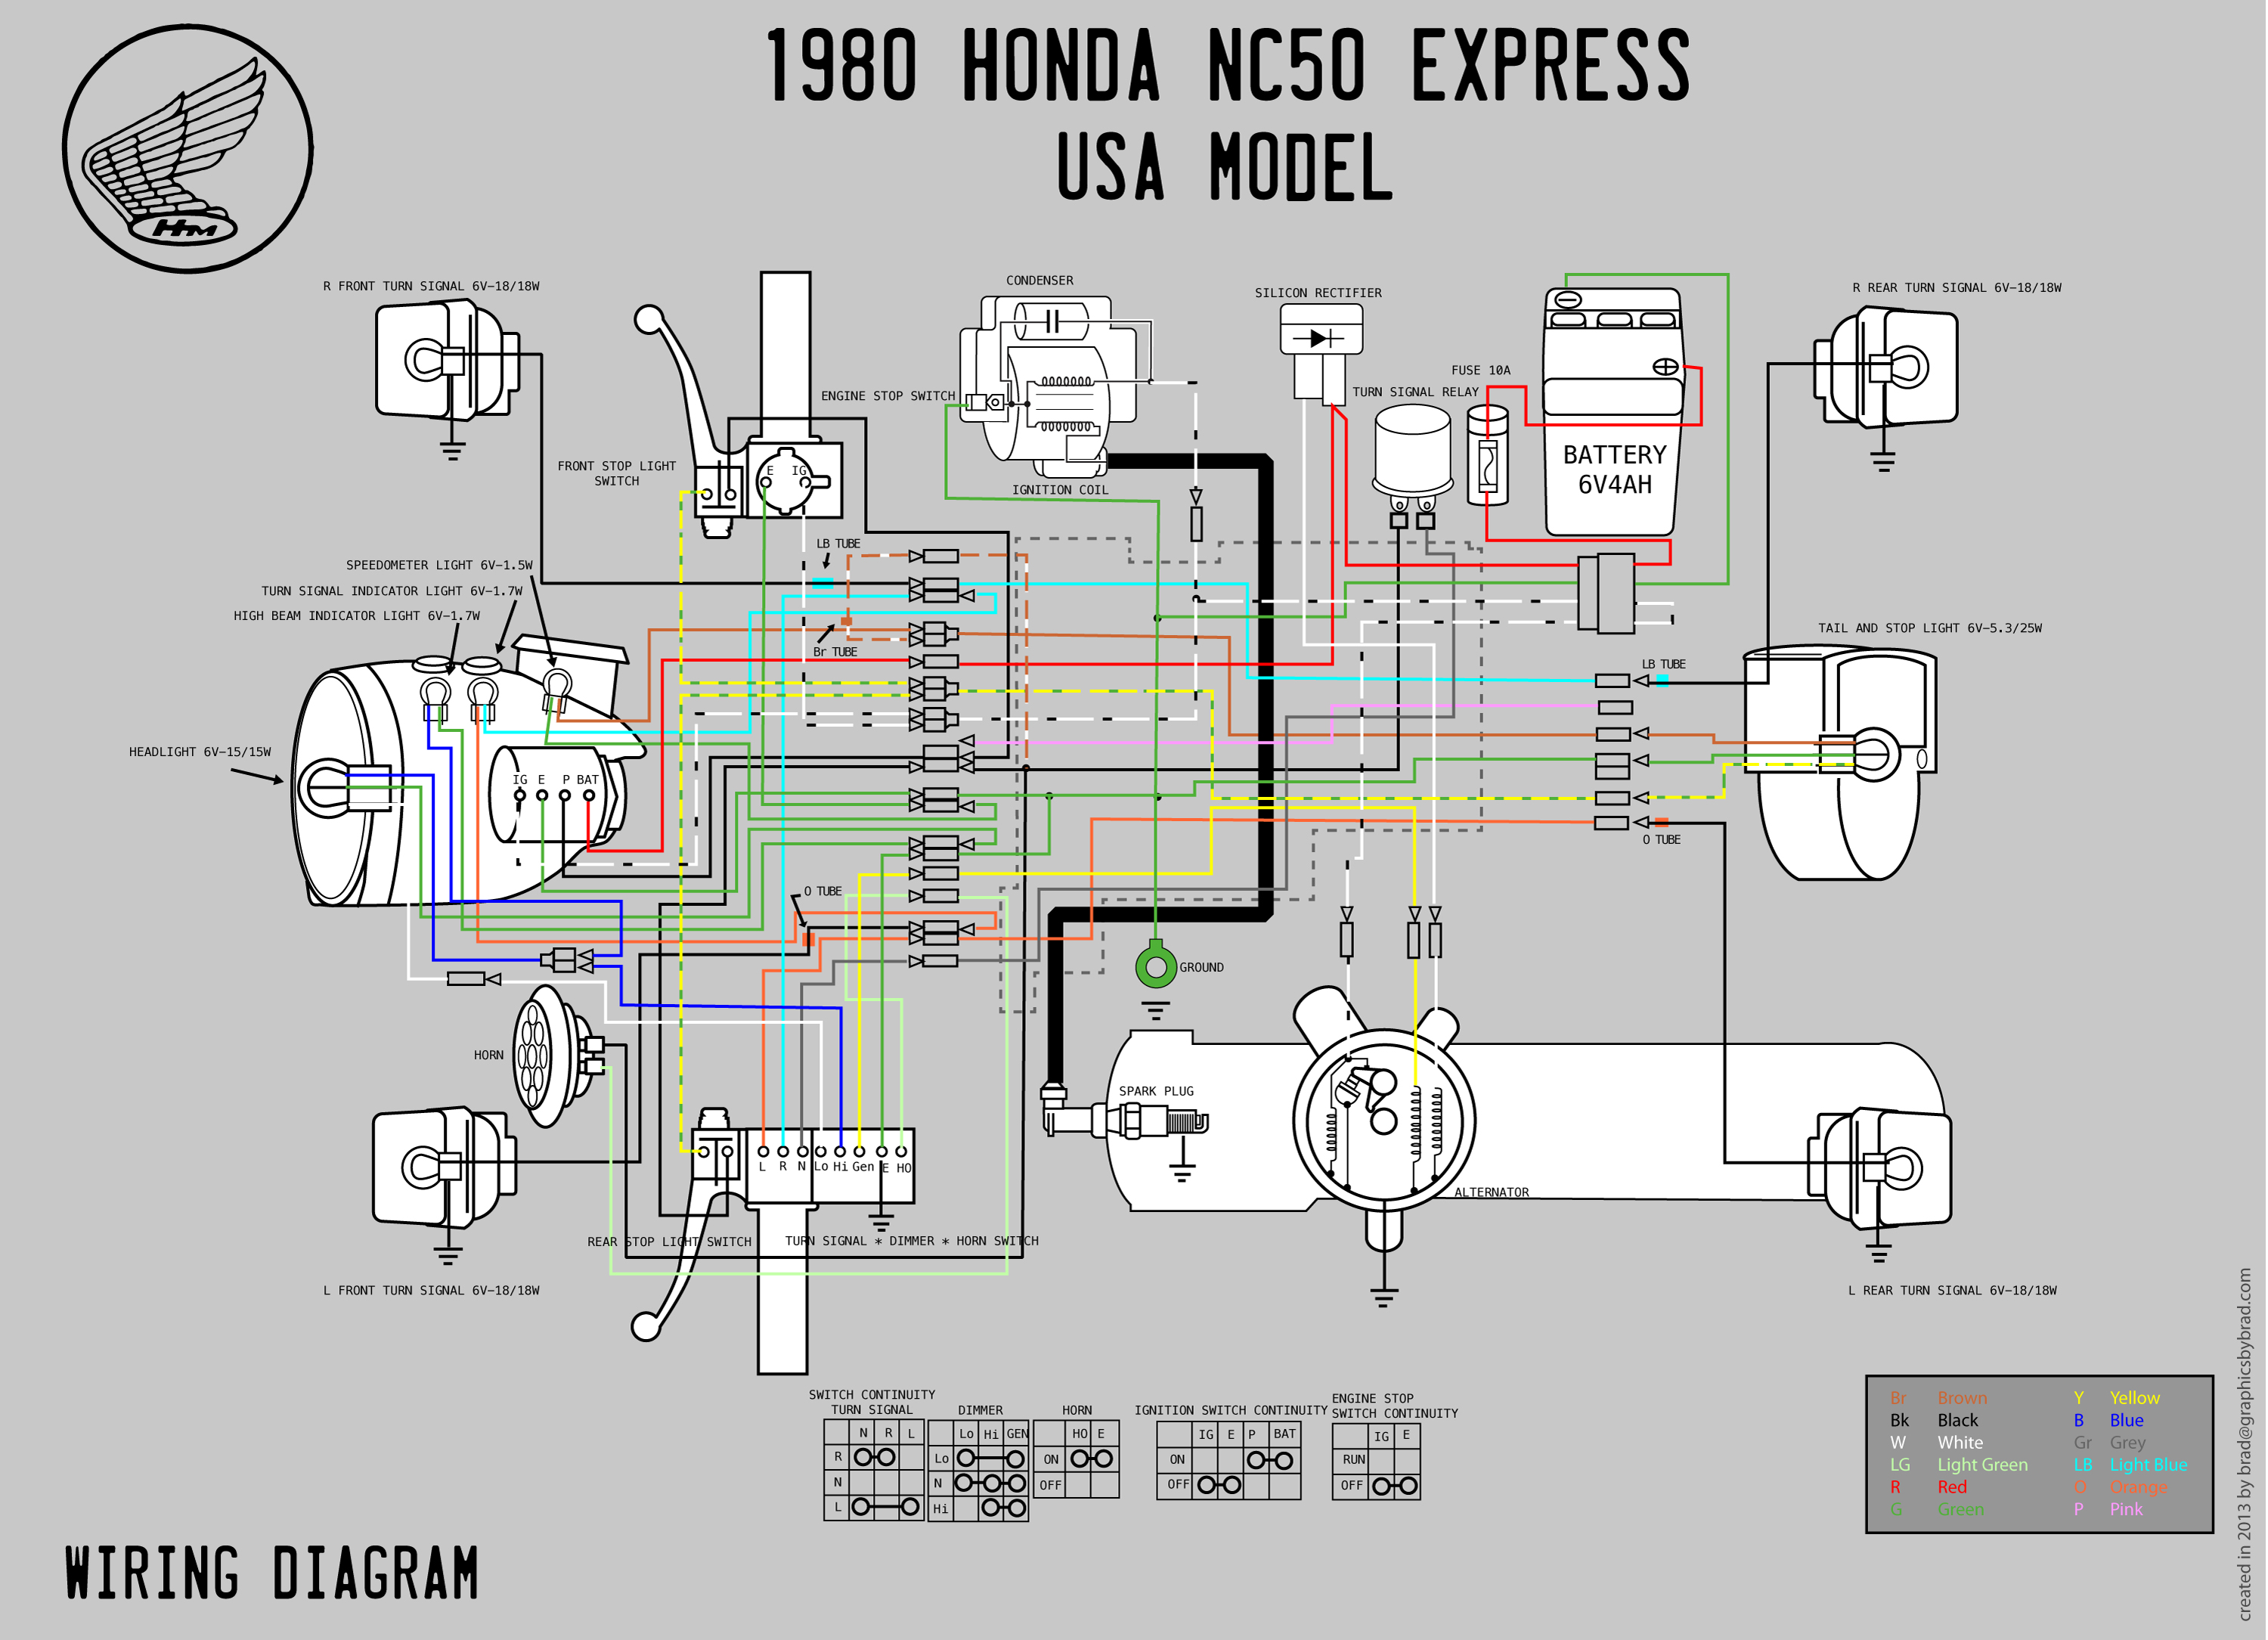 1980 honda nc50 wiring diagram moped wiki 2000 honda civic wiring diagram 1980 nc50 wiring lrg jpg